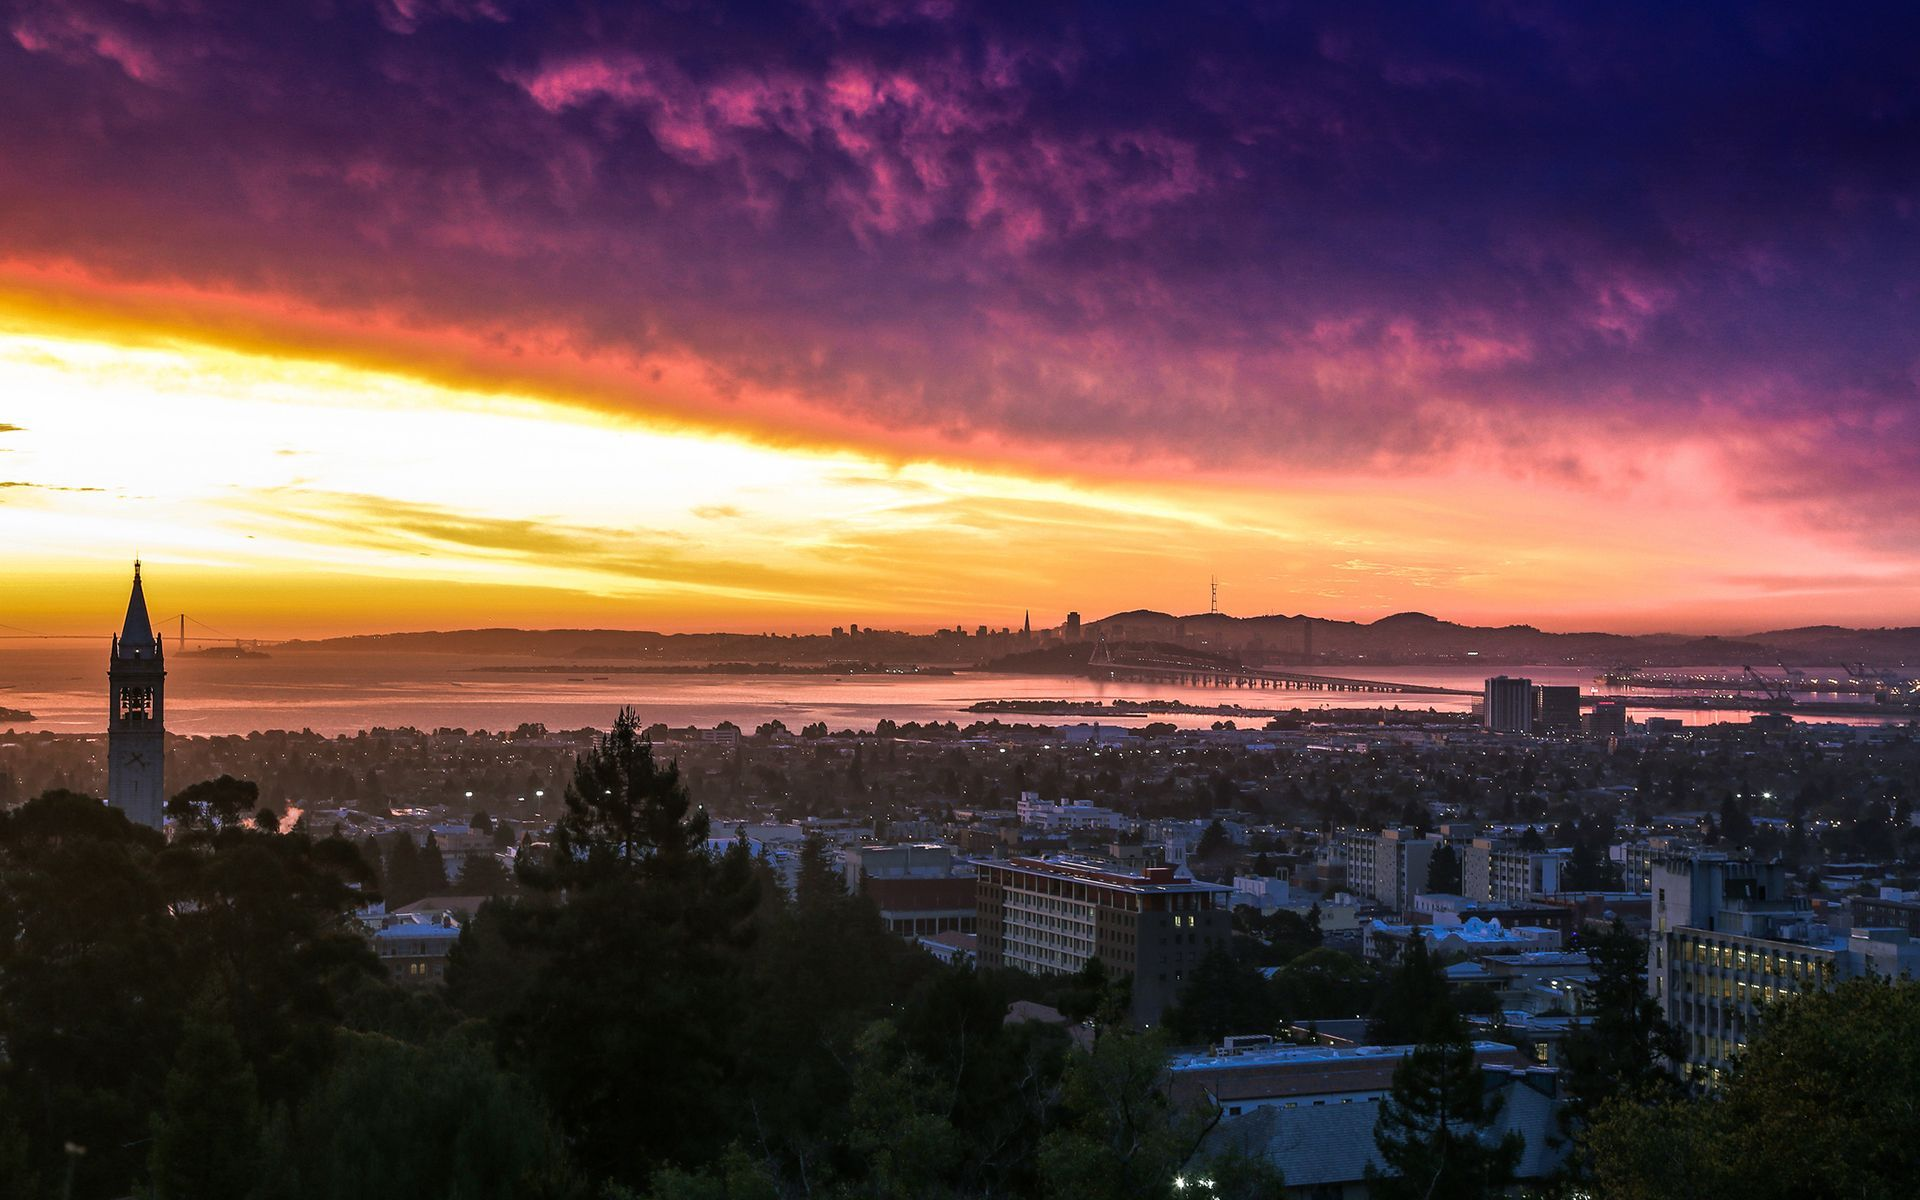 UC Berkeley sunset California wallpaper 17889 1920x1200